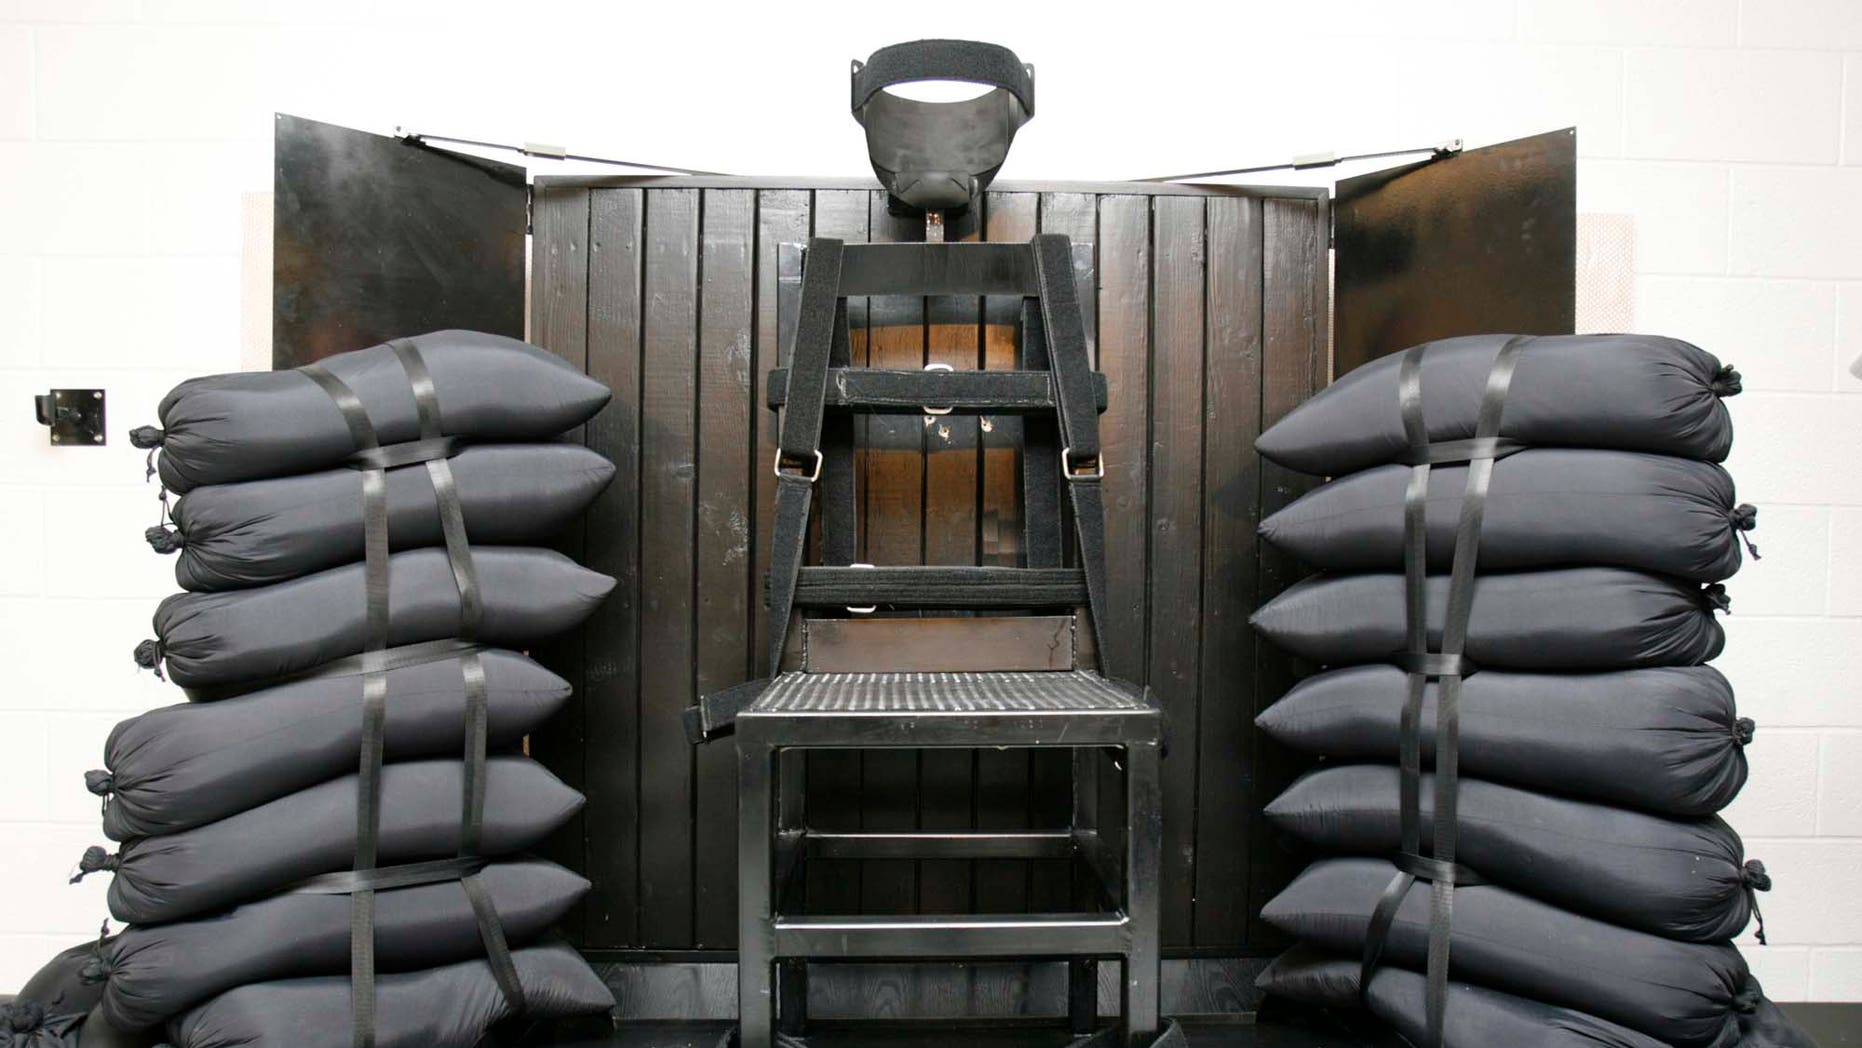 The execution chamber at the Utah State Prison after Ronnie Lee Gardner was executed by firing squad Friday, June 18, 2010. The bullet holes are visible in the wood panel behind the chair. Gardner was convicted of aggravated murder, a capital felony, in 1985. (AP Photo/Trent Nelson - Pool)